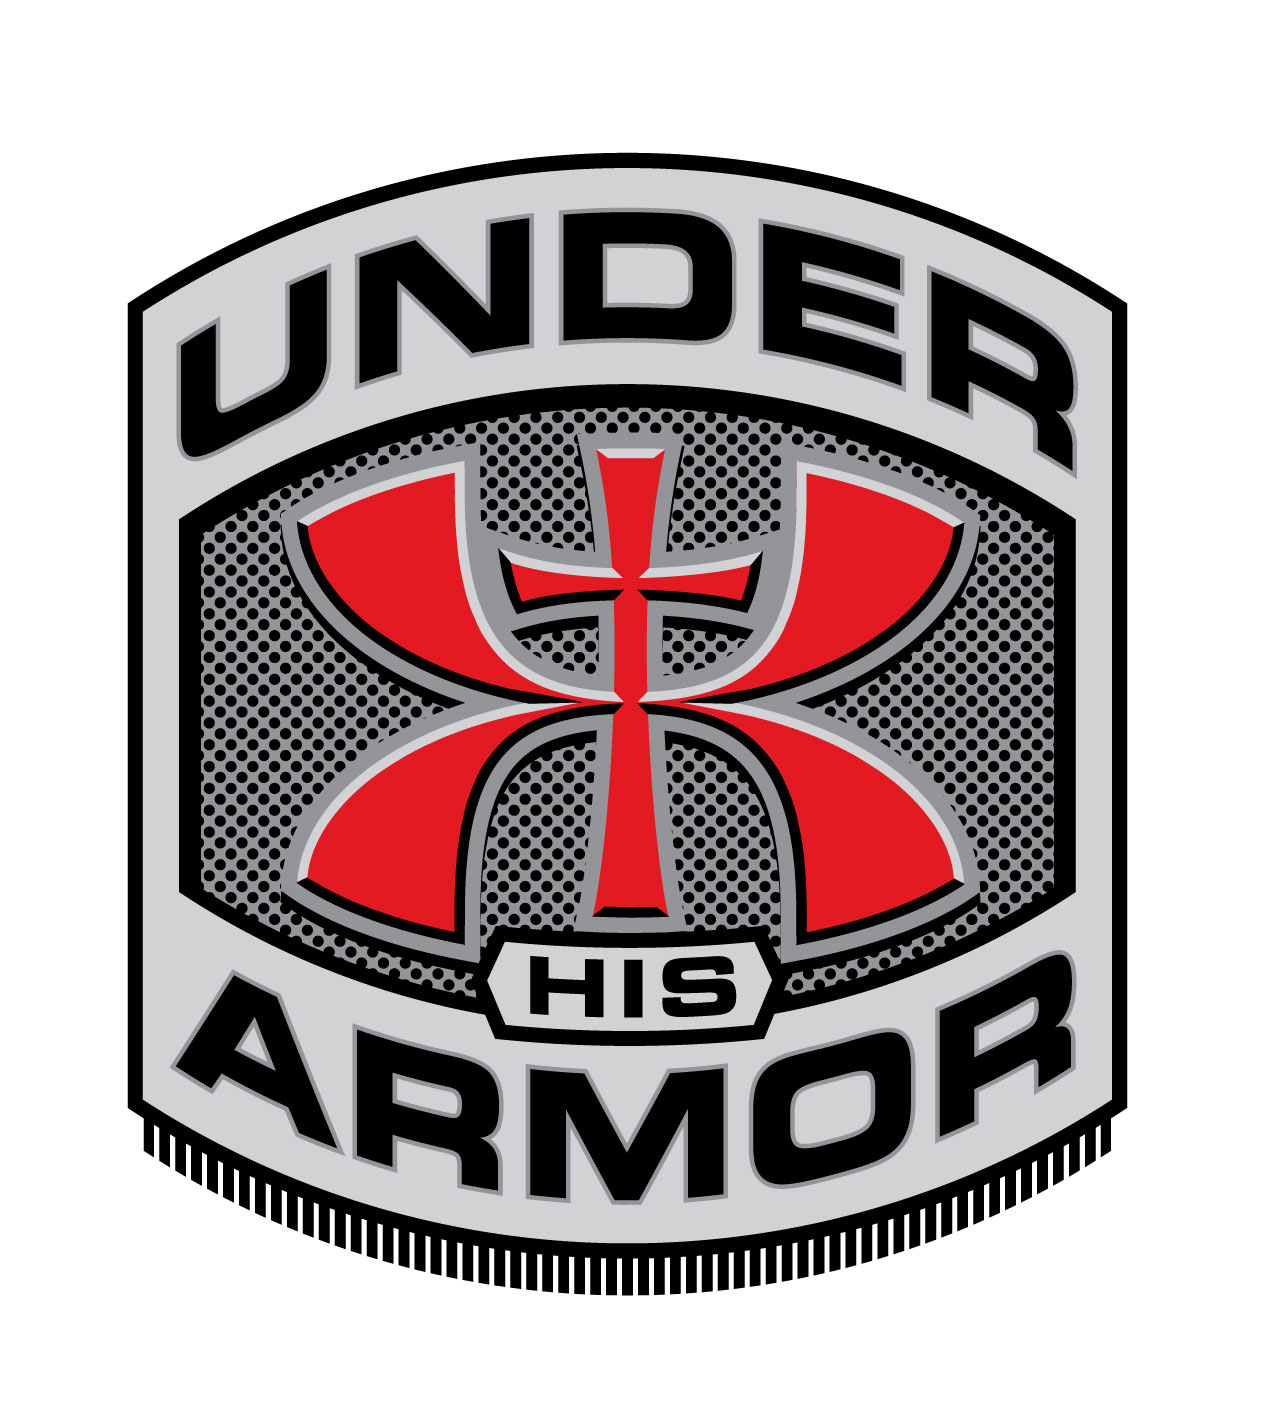 Under His Armor $40